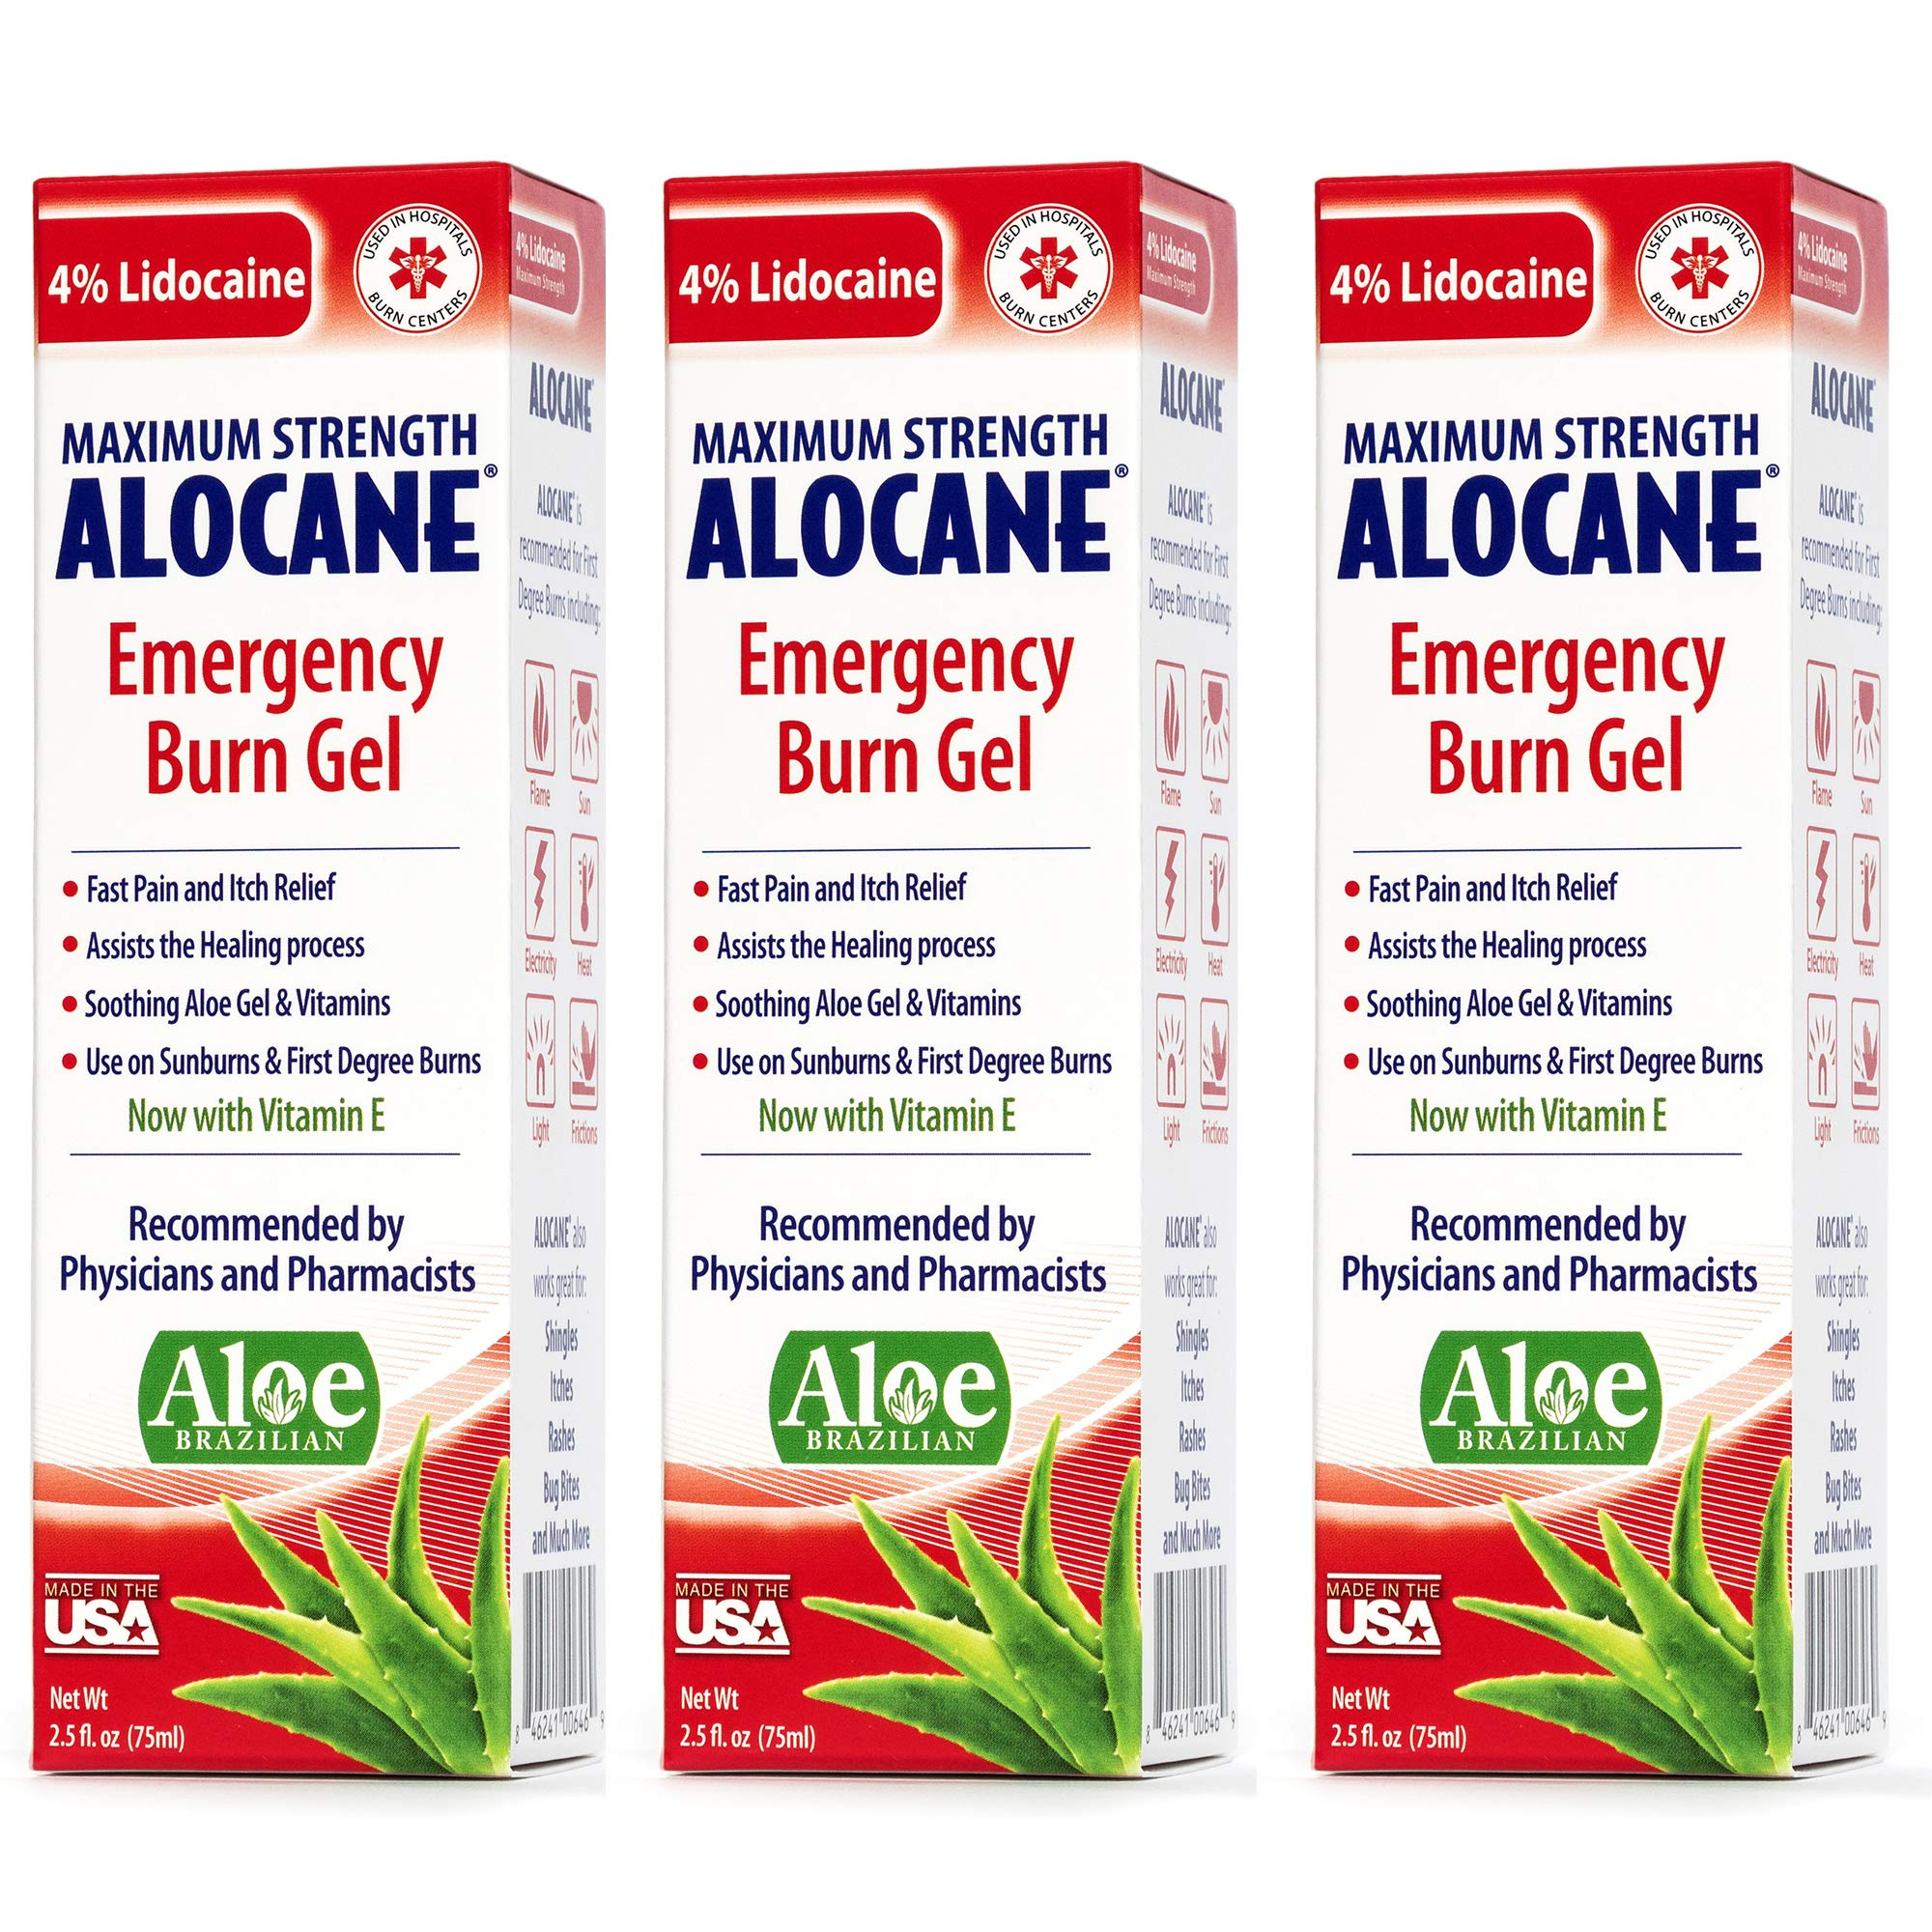 Alocane® Emergency Burn Gel 3 Pack, 4% Lidocaine Max Strength Fast Pain Itch Relief for Minor Burns, Sunburn, Kitchen, Radiation, Chemical, First Degree Burns, First Aid Treatment Burn Care 2.5 Fl Oz by Alocane